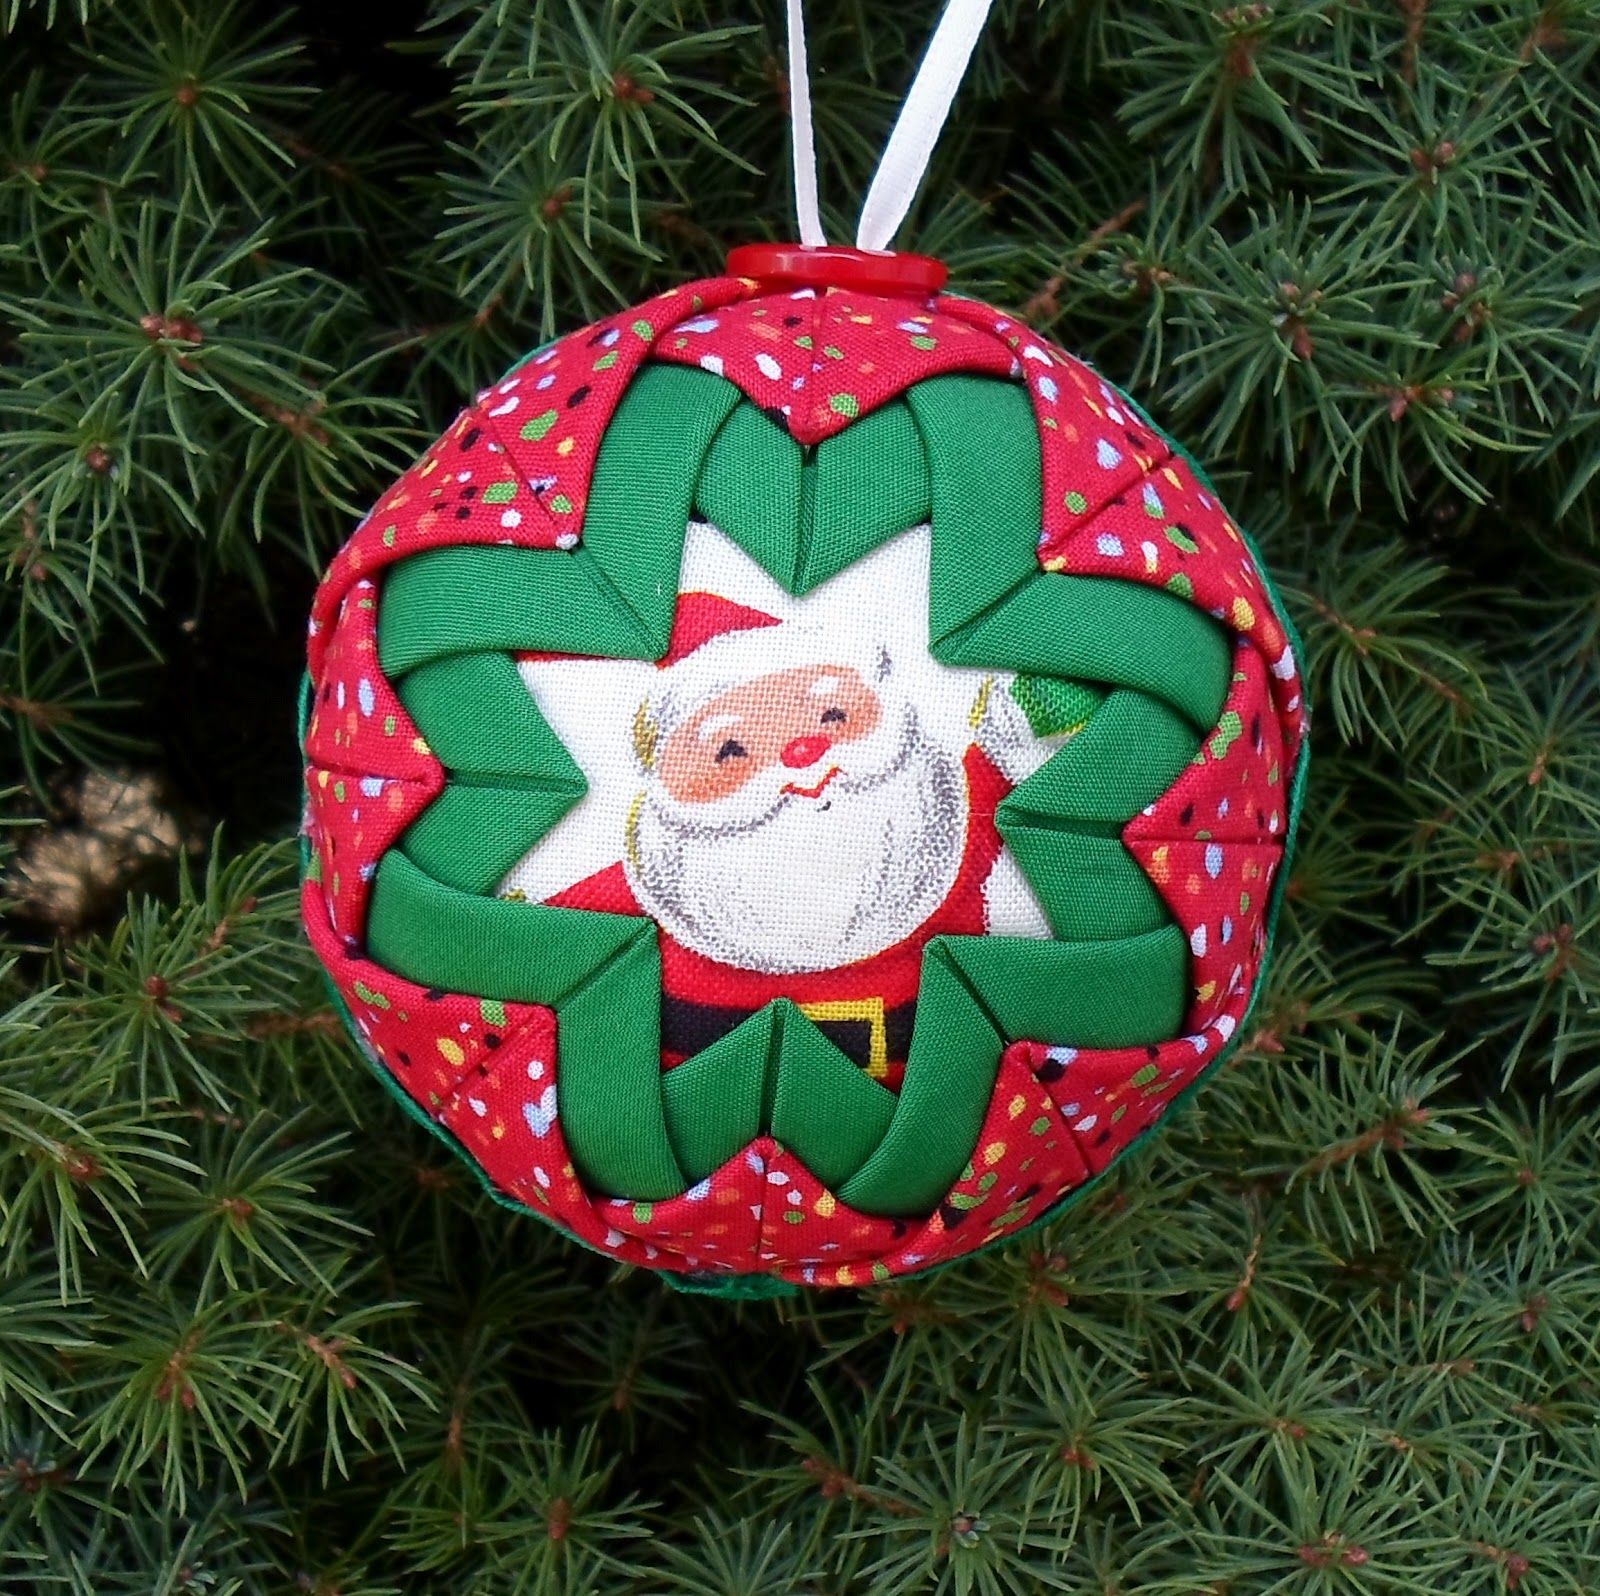 Pin By Radetta McQuaid On Christmas Ornaments